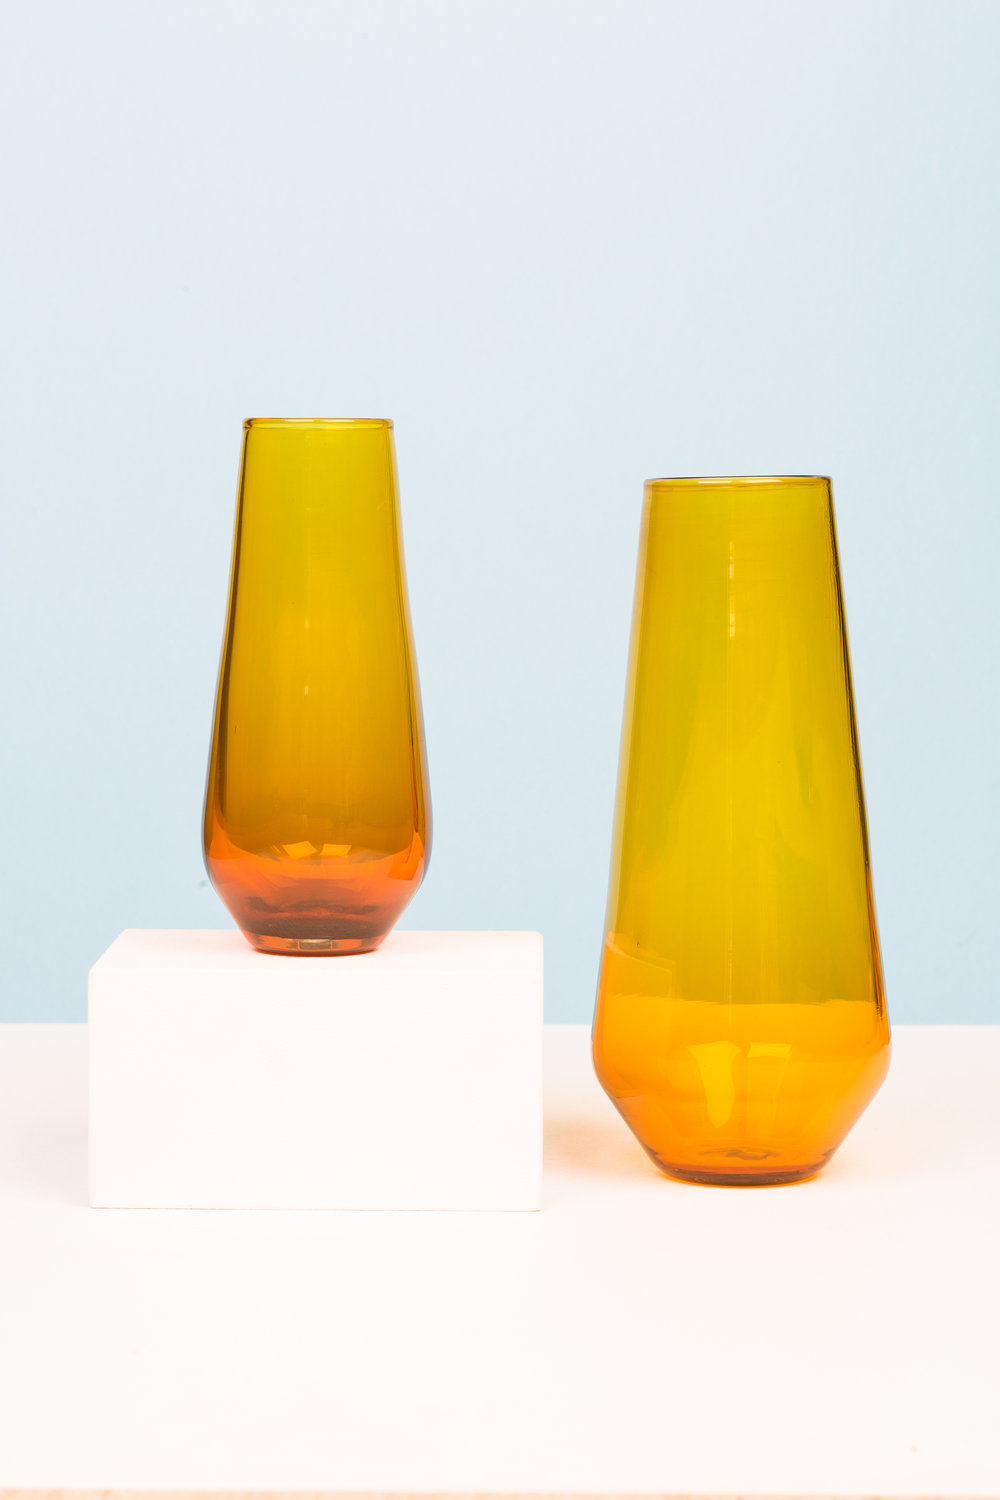 Medium and Small Cantic Vases in Brilliant Gold, 2015